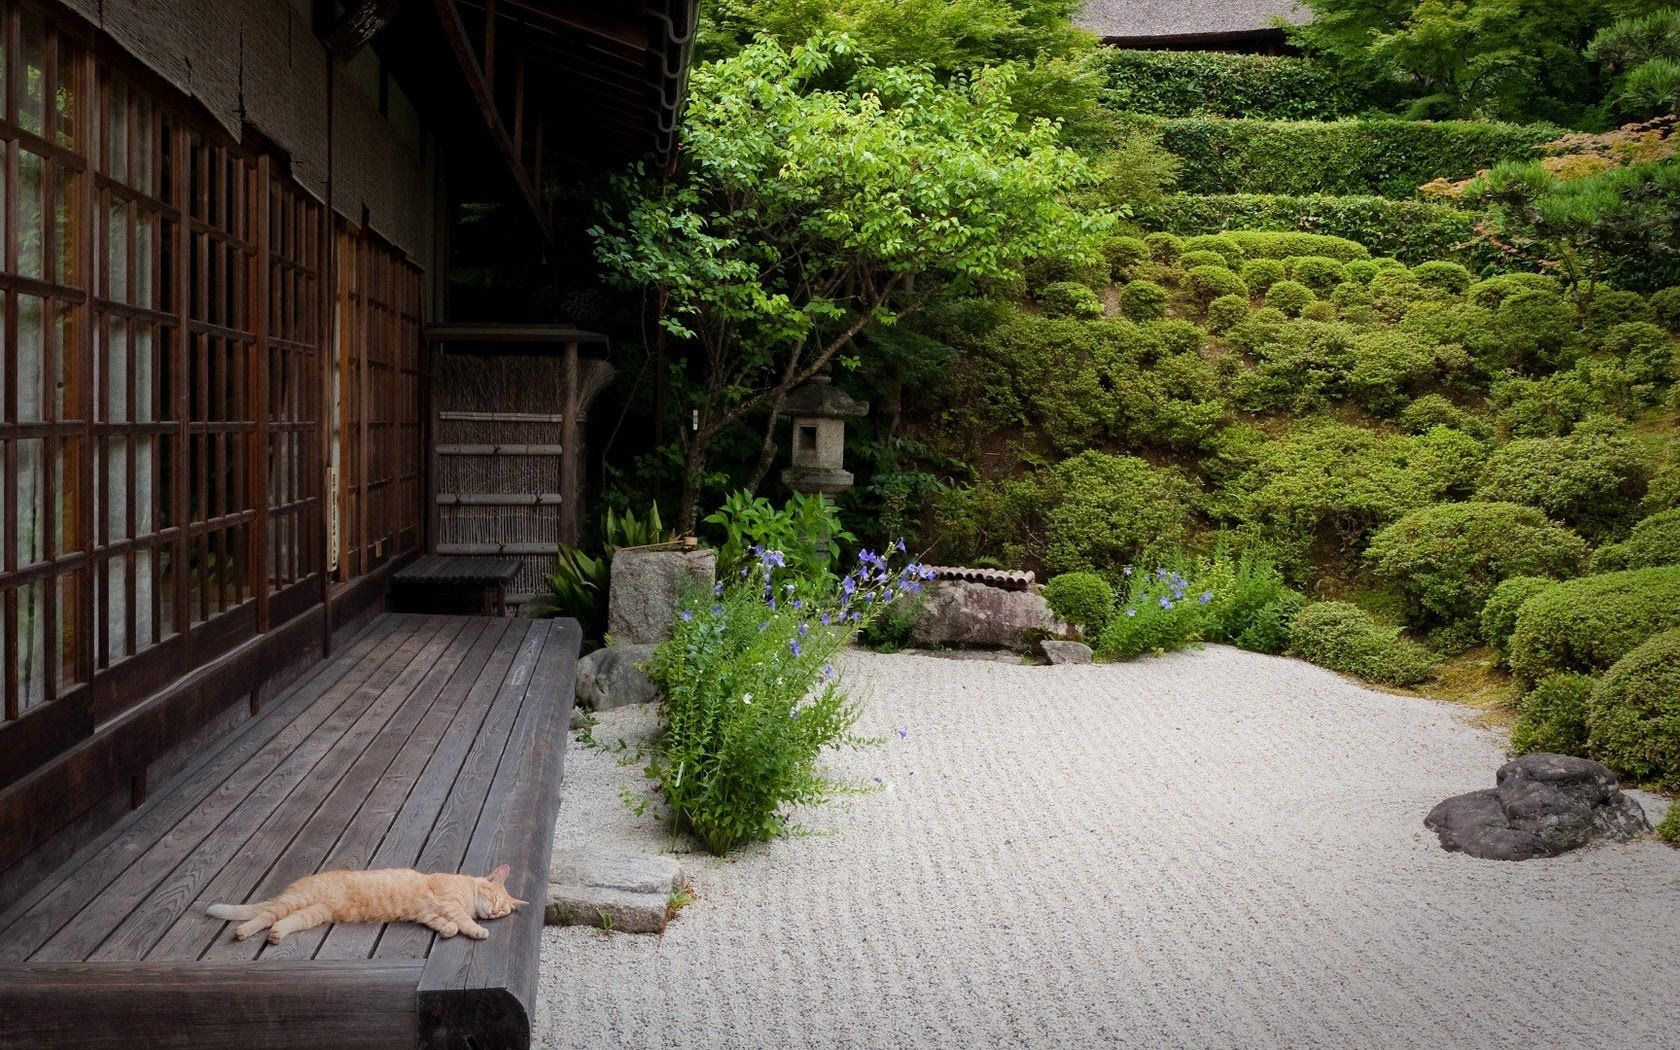 Japanese Garden Landscaping Design Ideas And Photos. Japanese Gardens  Combine The Basic Elements Of Plants, Water, And Rocks With Simple, Clean  Lines To ... Part 60